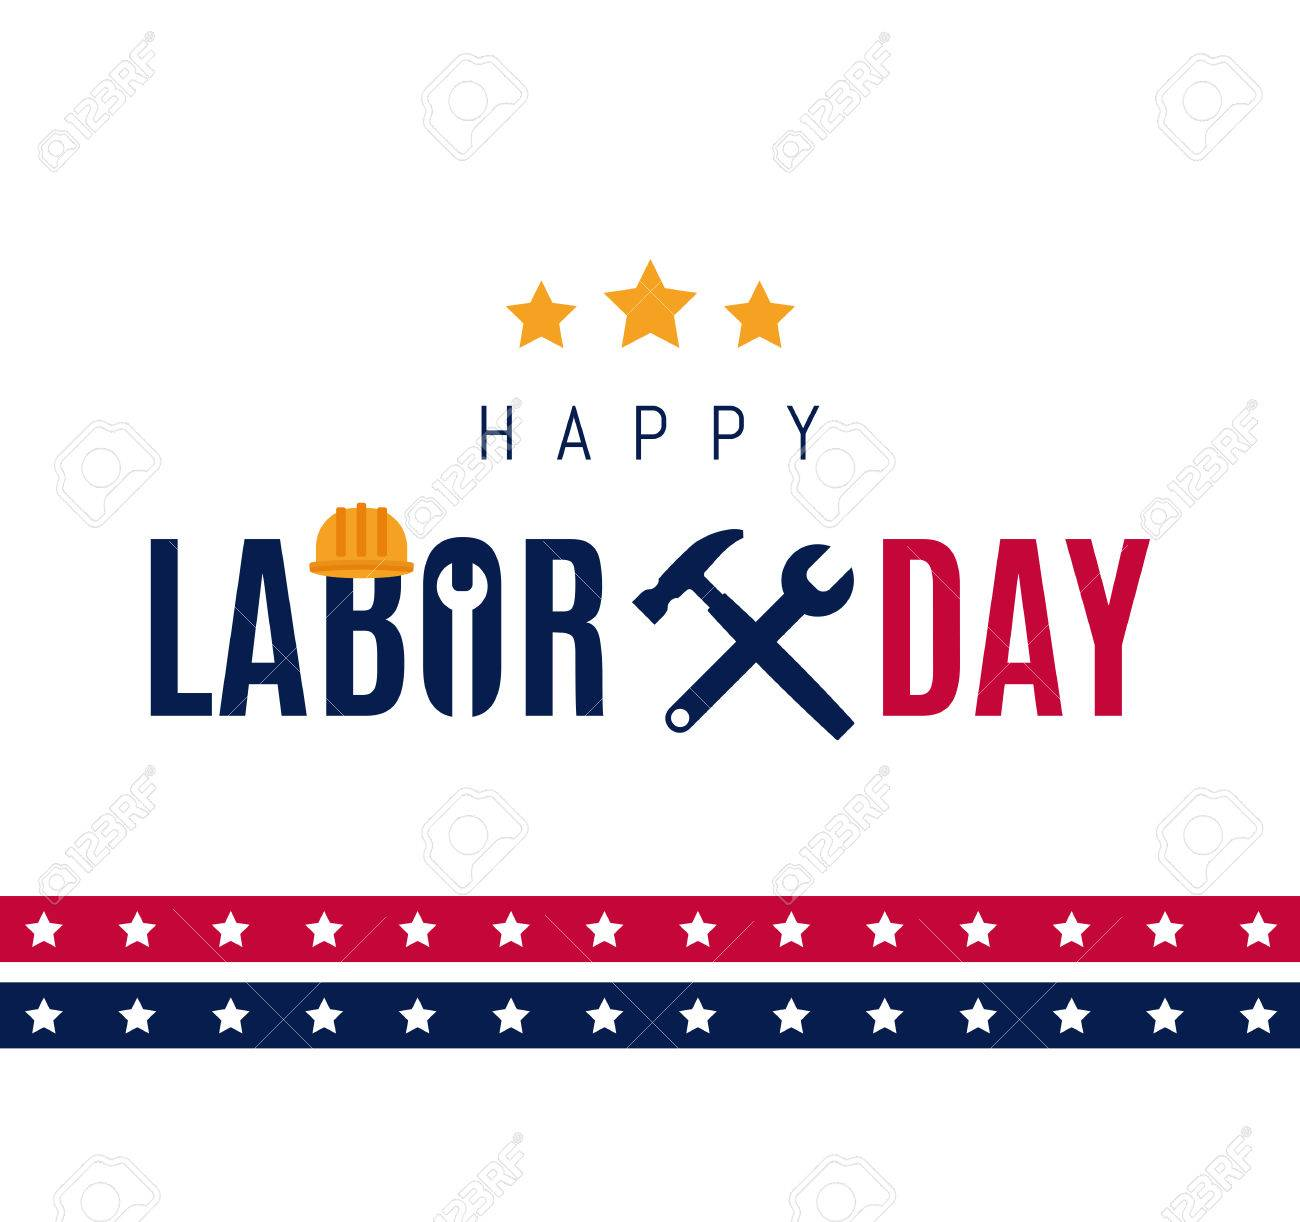 Happy Labor day Greetings Cards design Poster, banner, brochure, flyer. Wrench and hammer icon with star strip and lettering. Flat design. Vector illustration. EPS 10 - 72312482